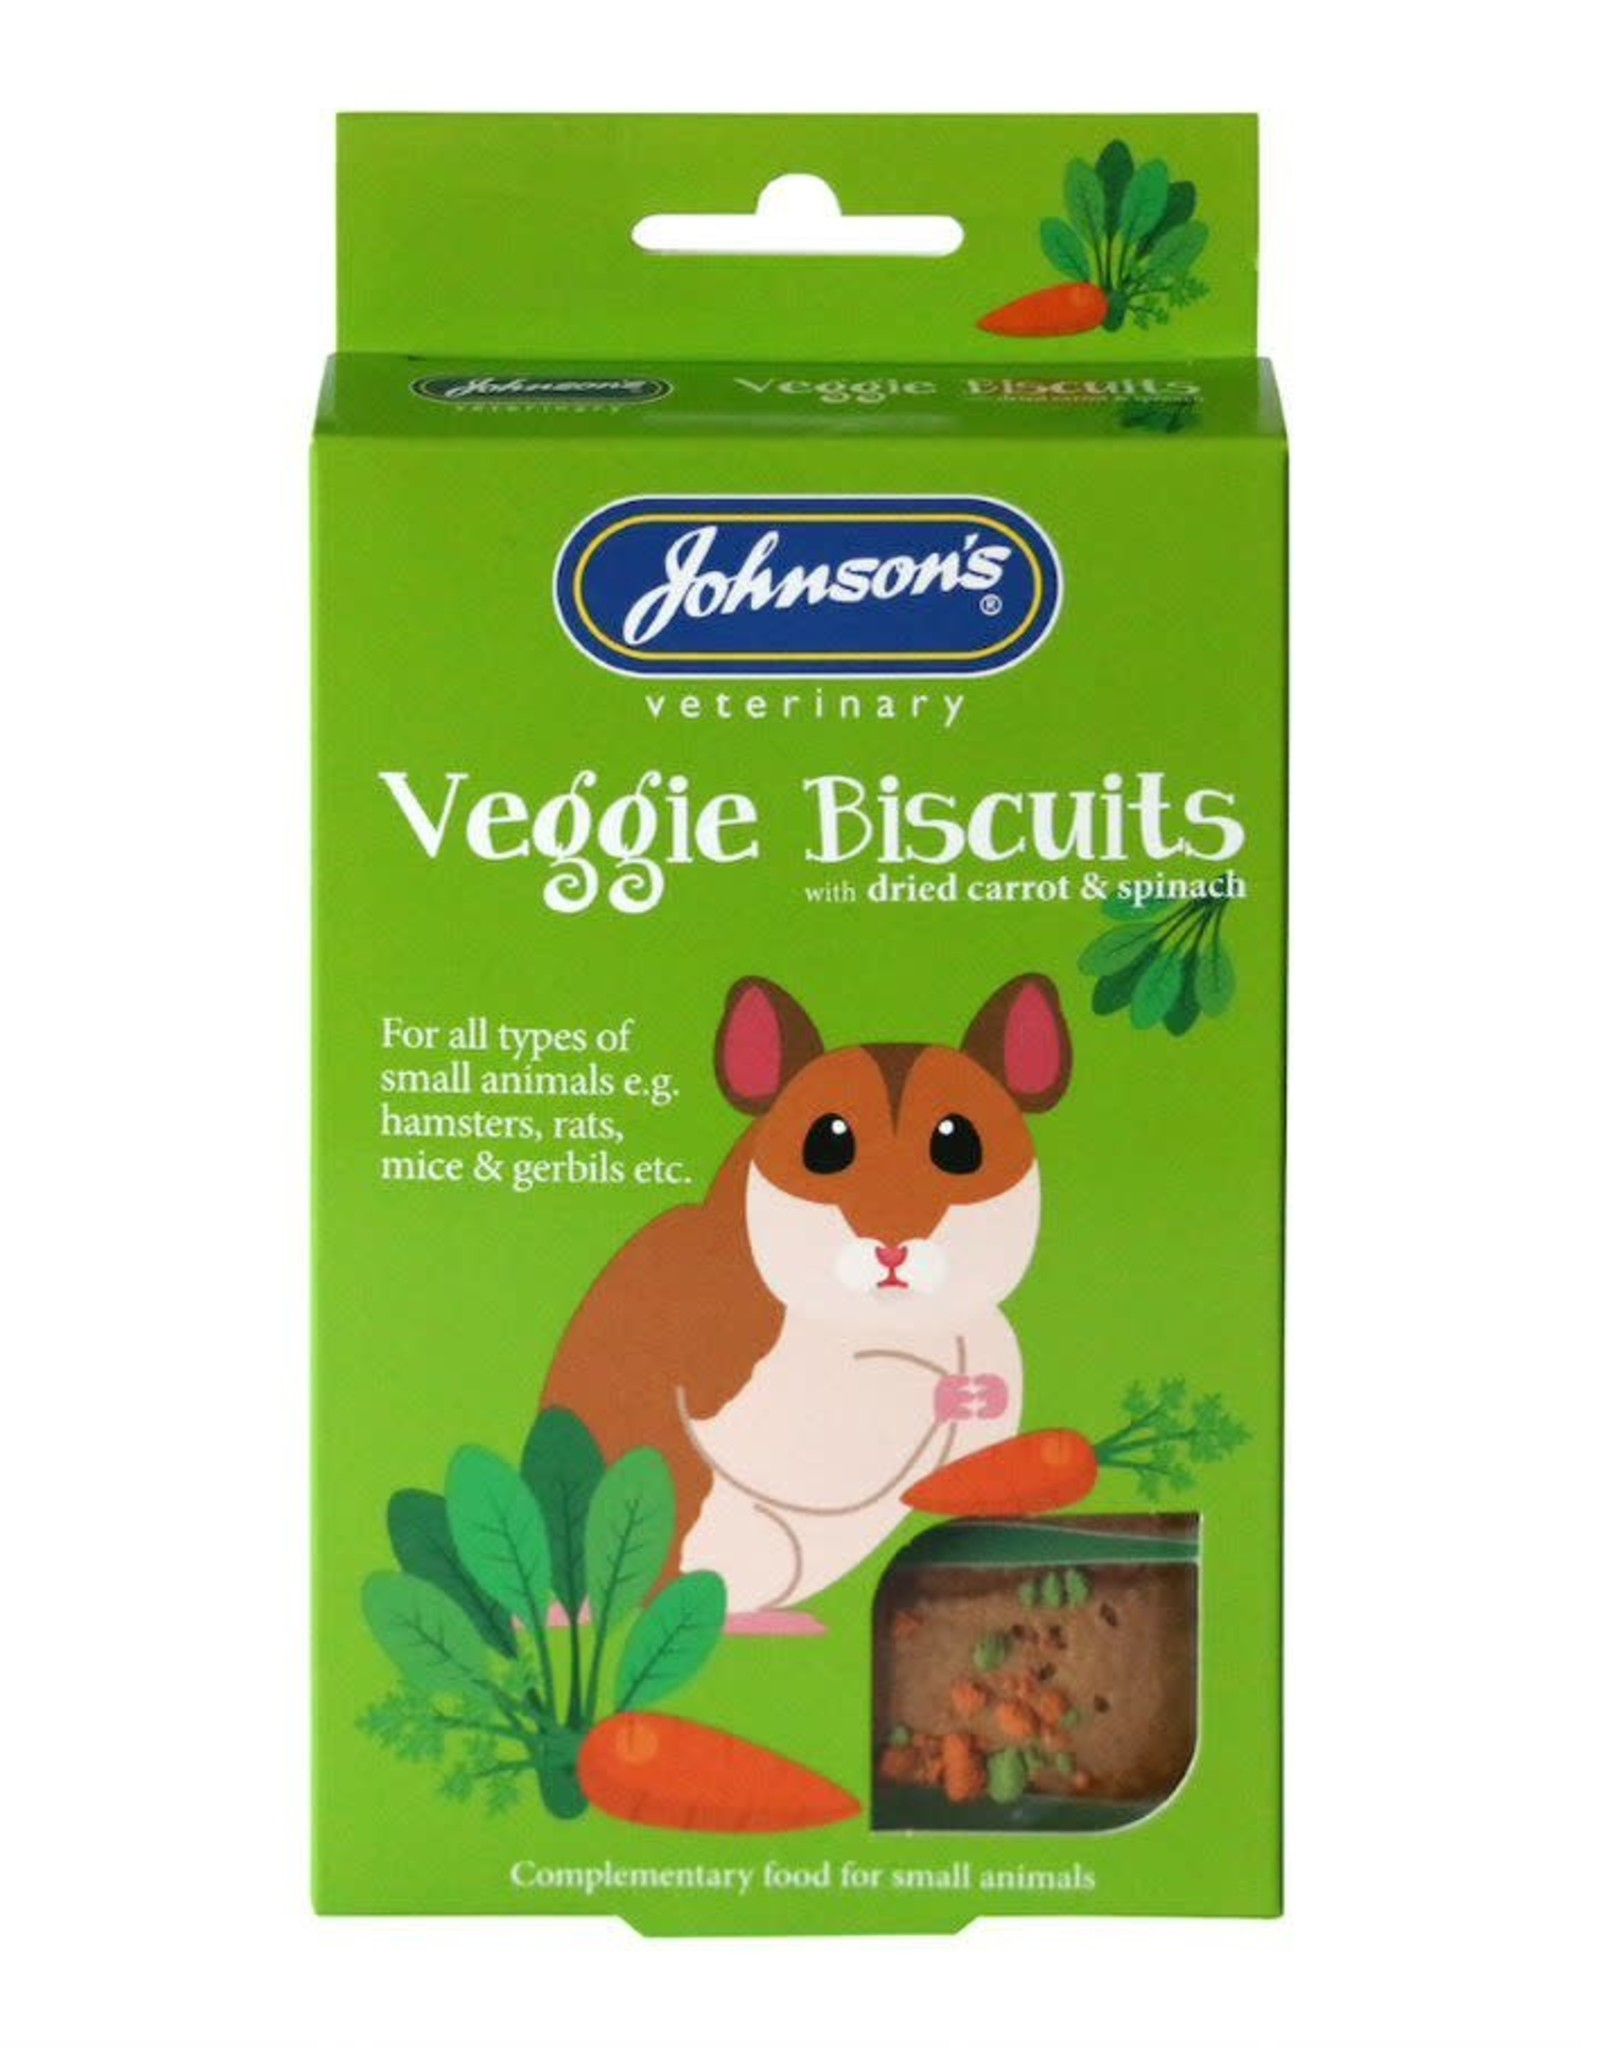 Johnsons Veggie Biscuits Treats with Dried Carrot & Spinach for Small Animals